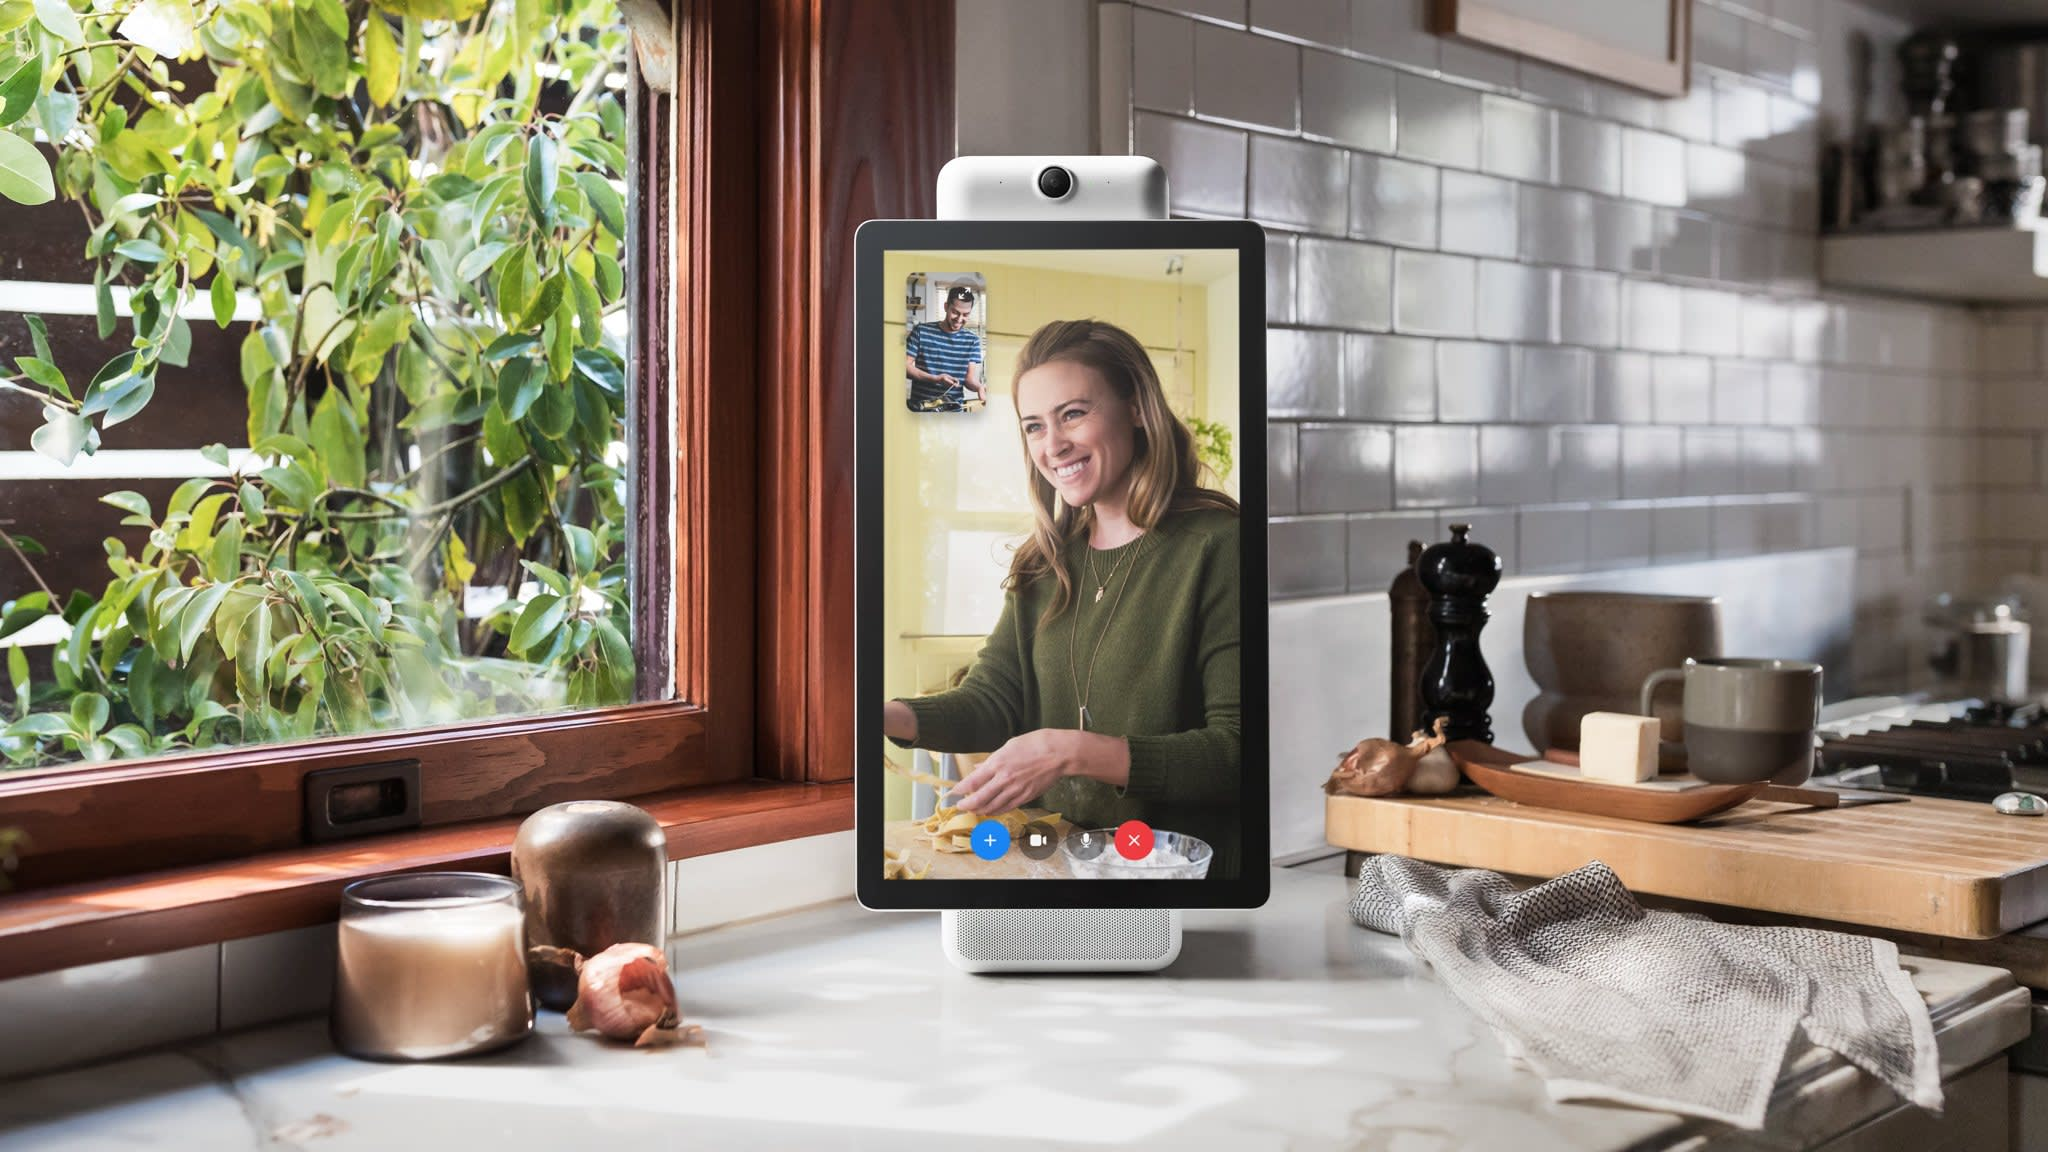 Facebook launches video-calling device Portal